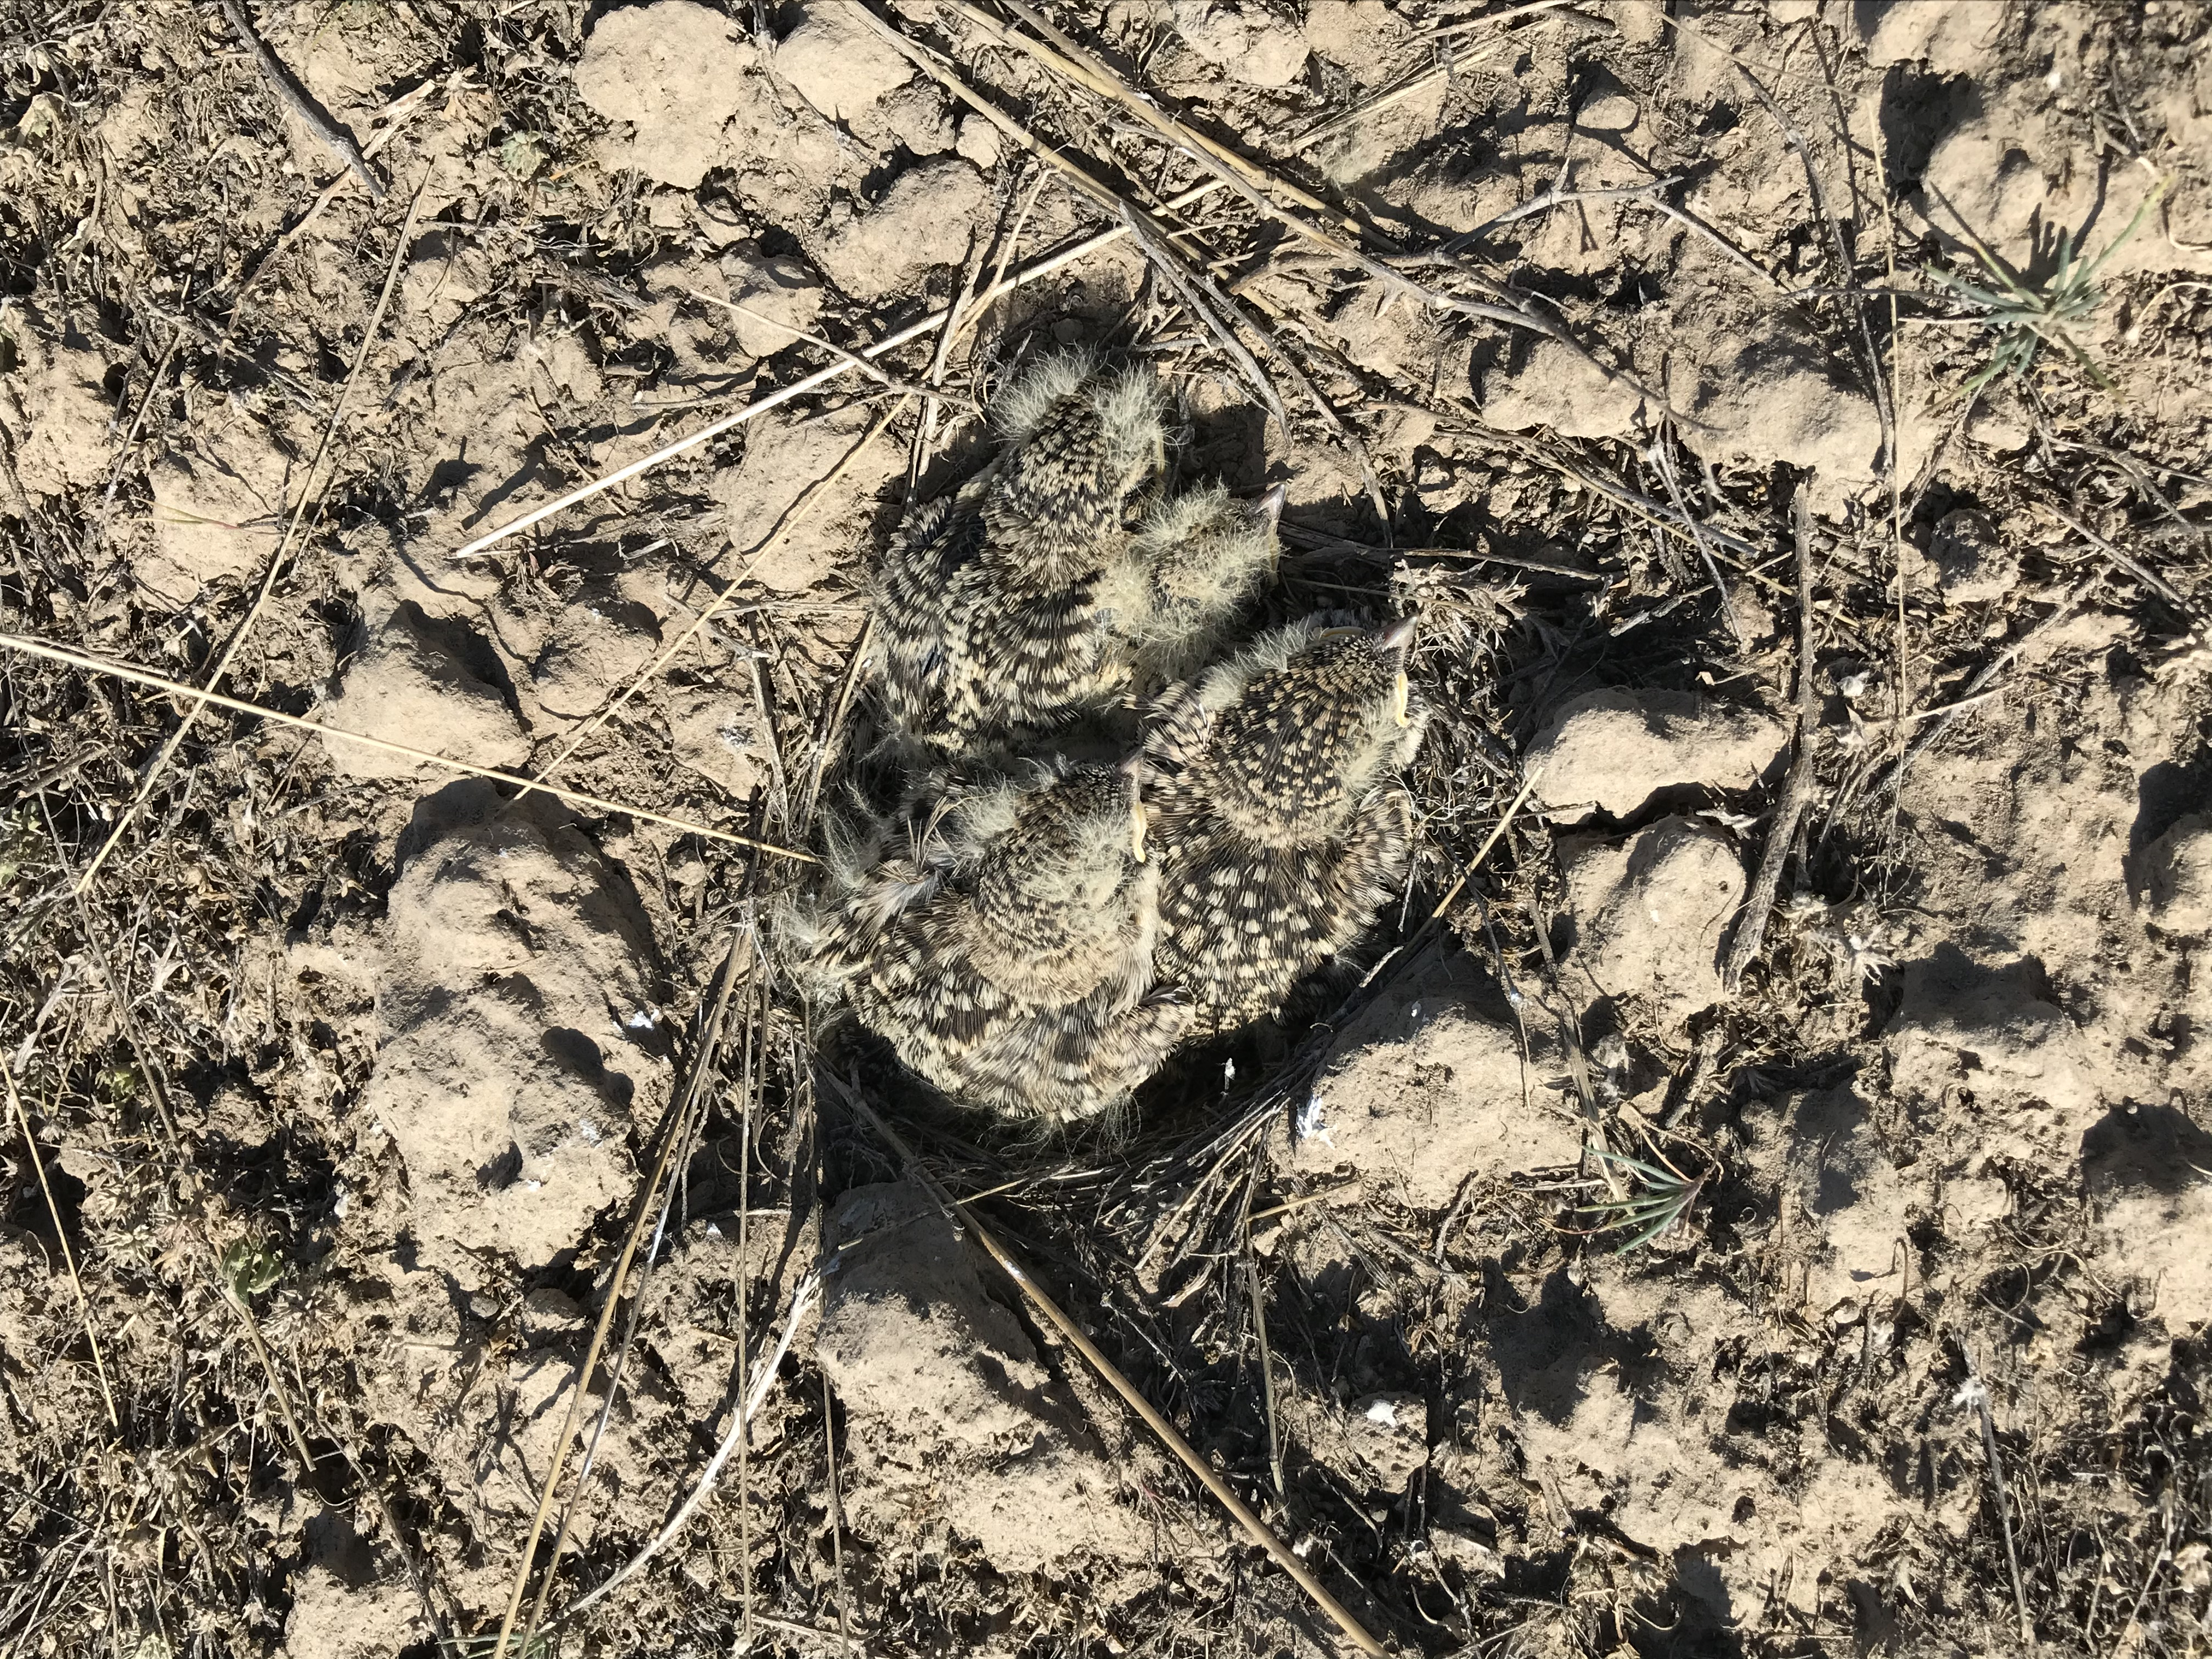 three very camouflaged brown speckled chicks huddle together in a small impression in the dirt. Not much of a nest structure is visible